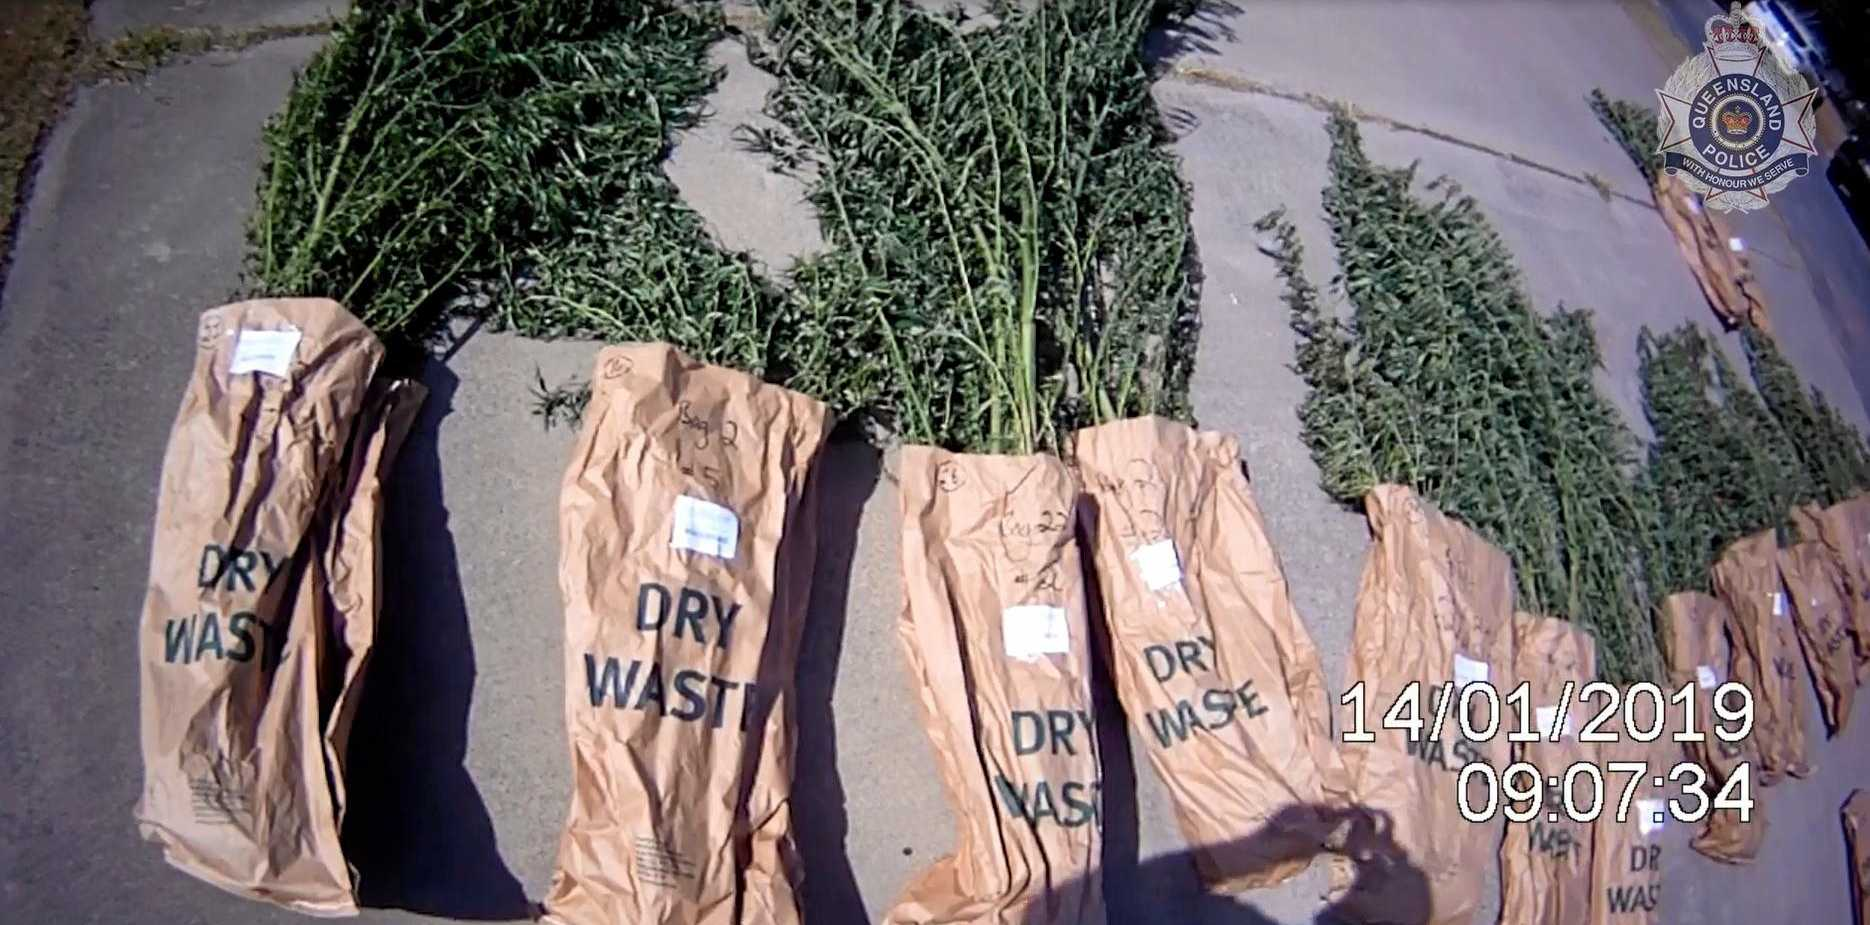 Police found 182 cannabis plants in the backyard of a Coolum Beach and three kilograms of dried cannabis.